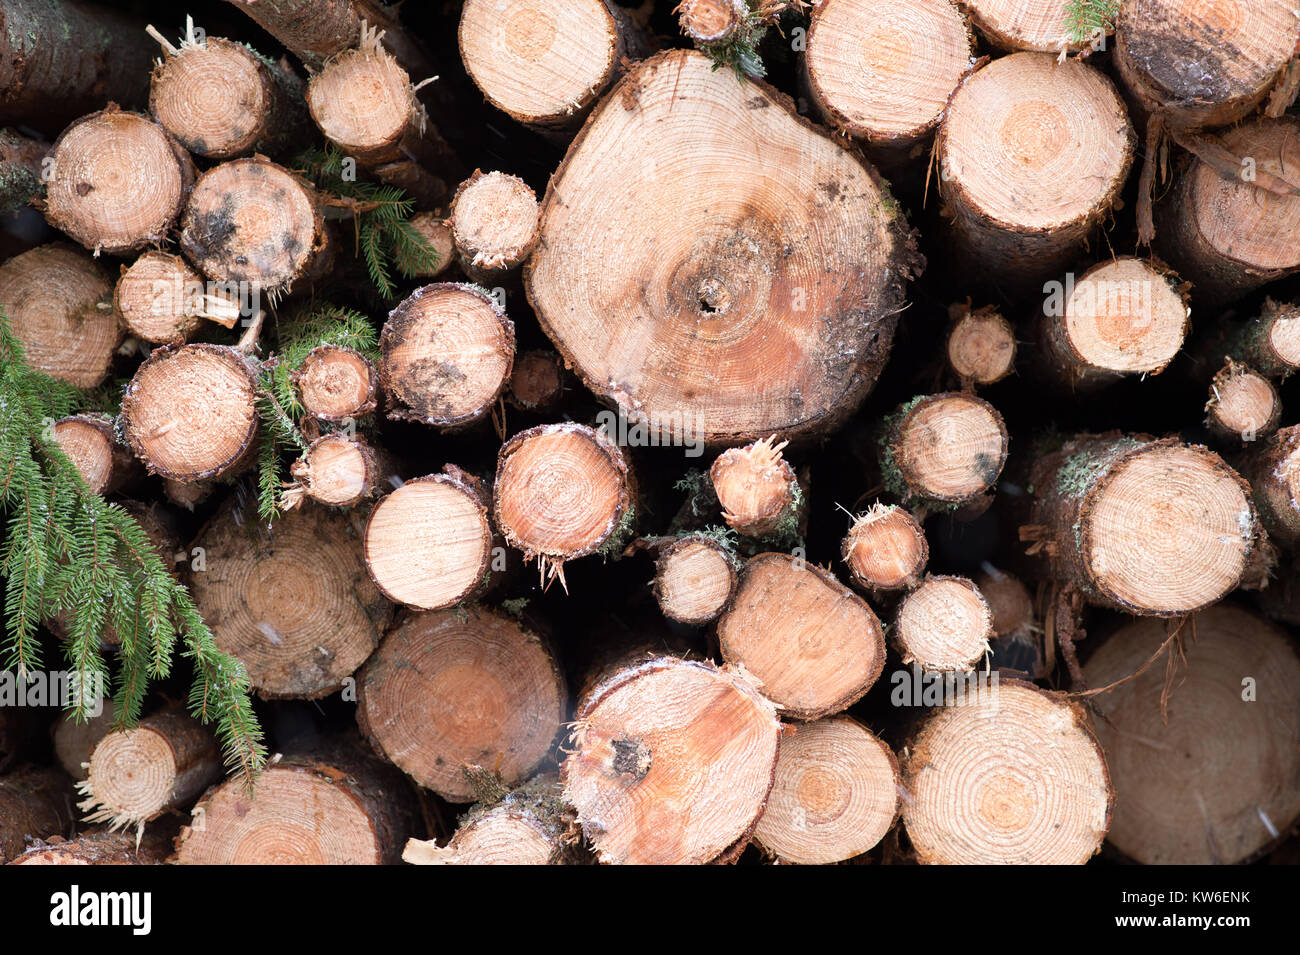 Harvested timber in a snowy Swedish forest. Stock Photo